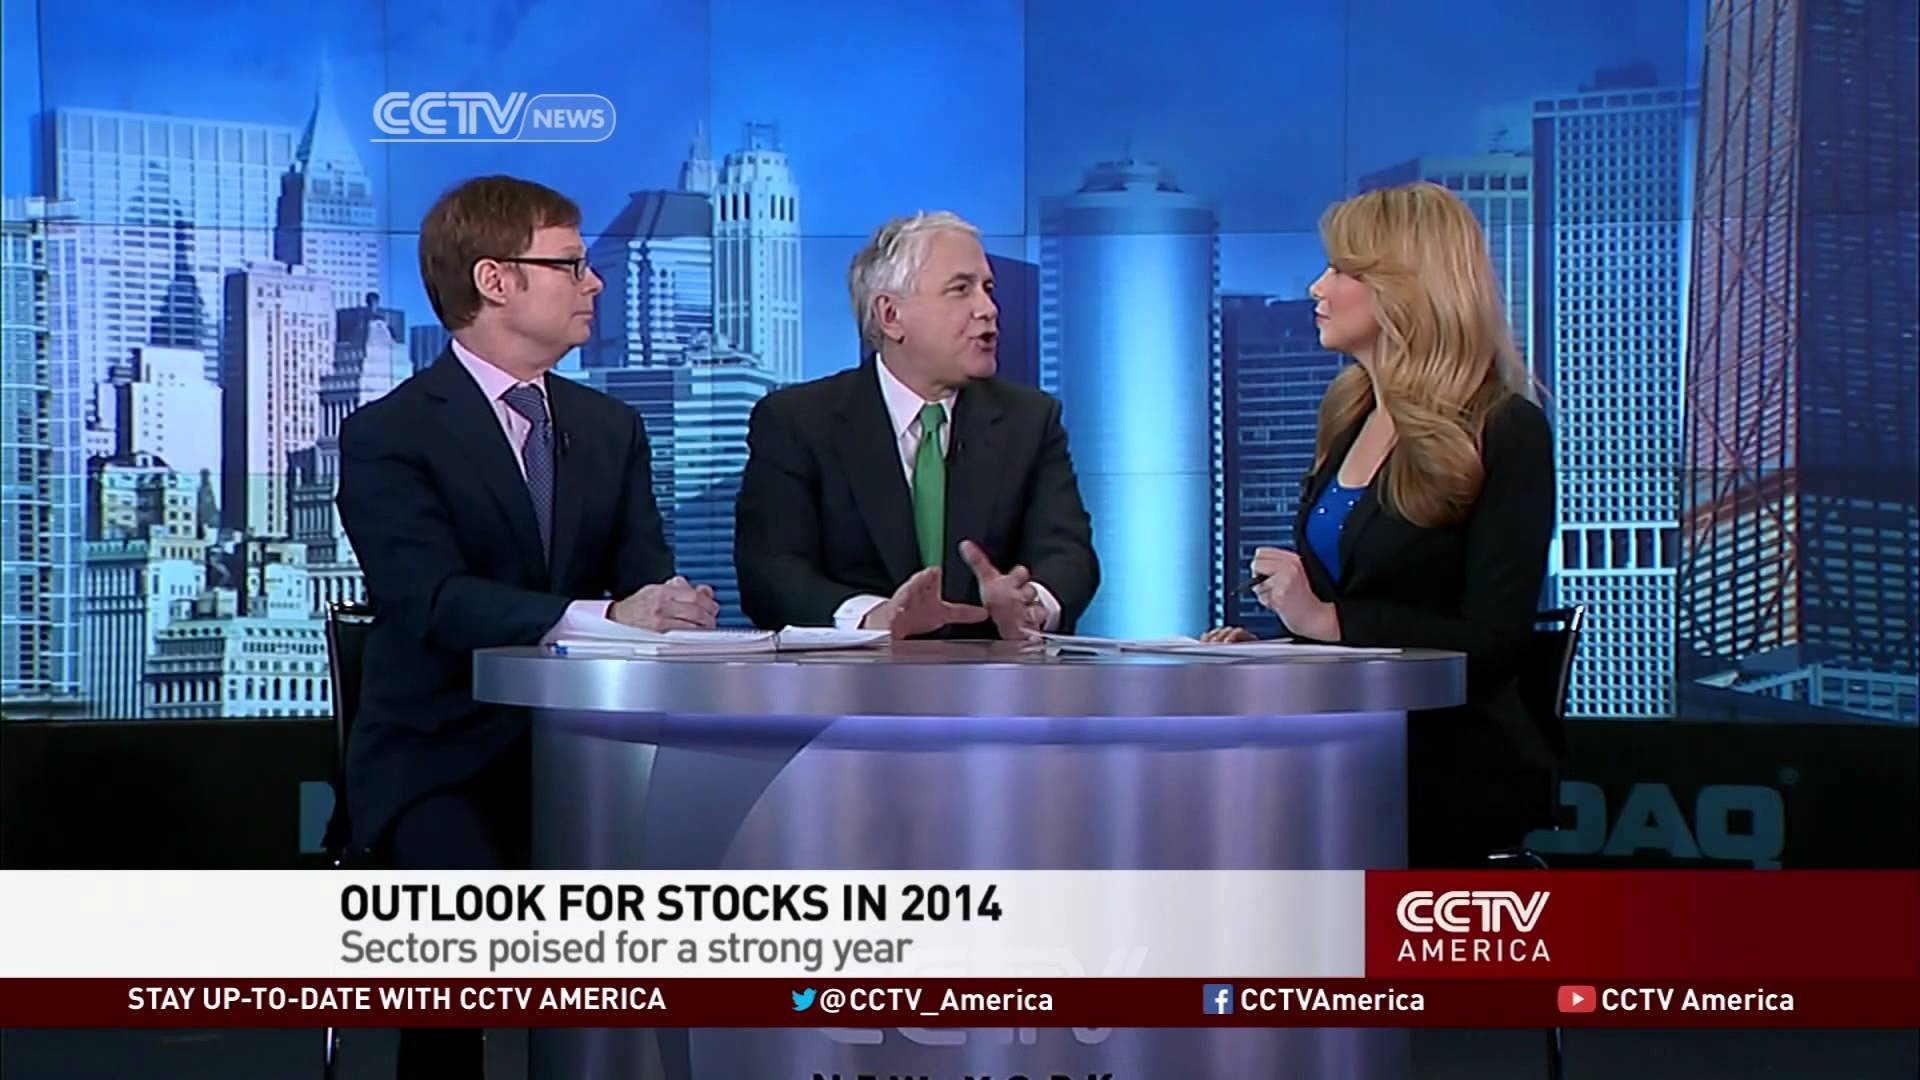 Stock Market Outlook for 2014